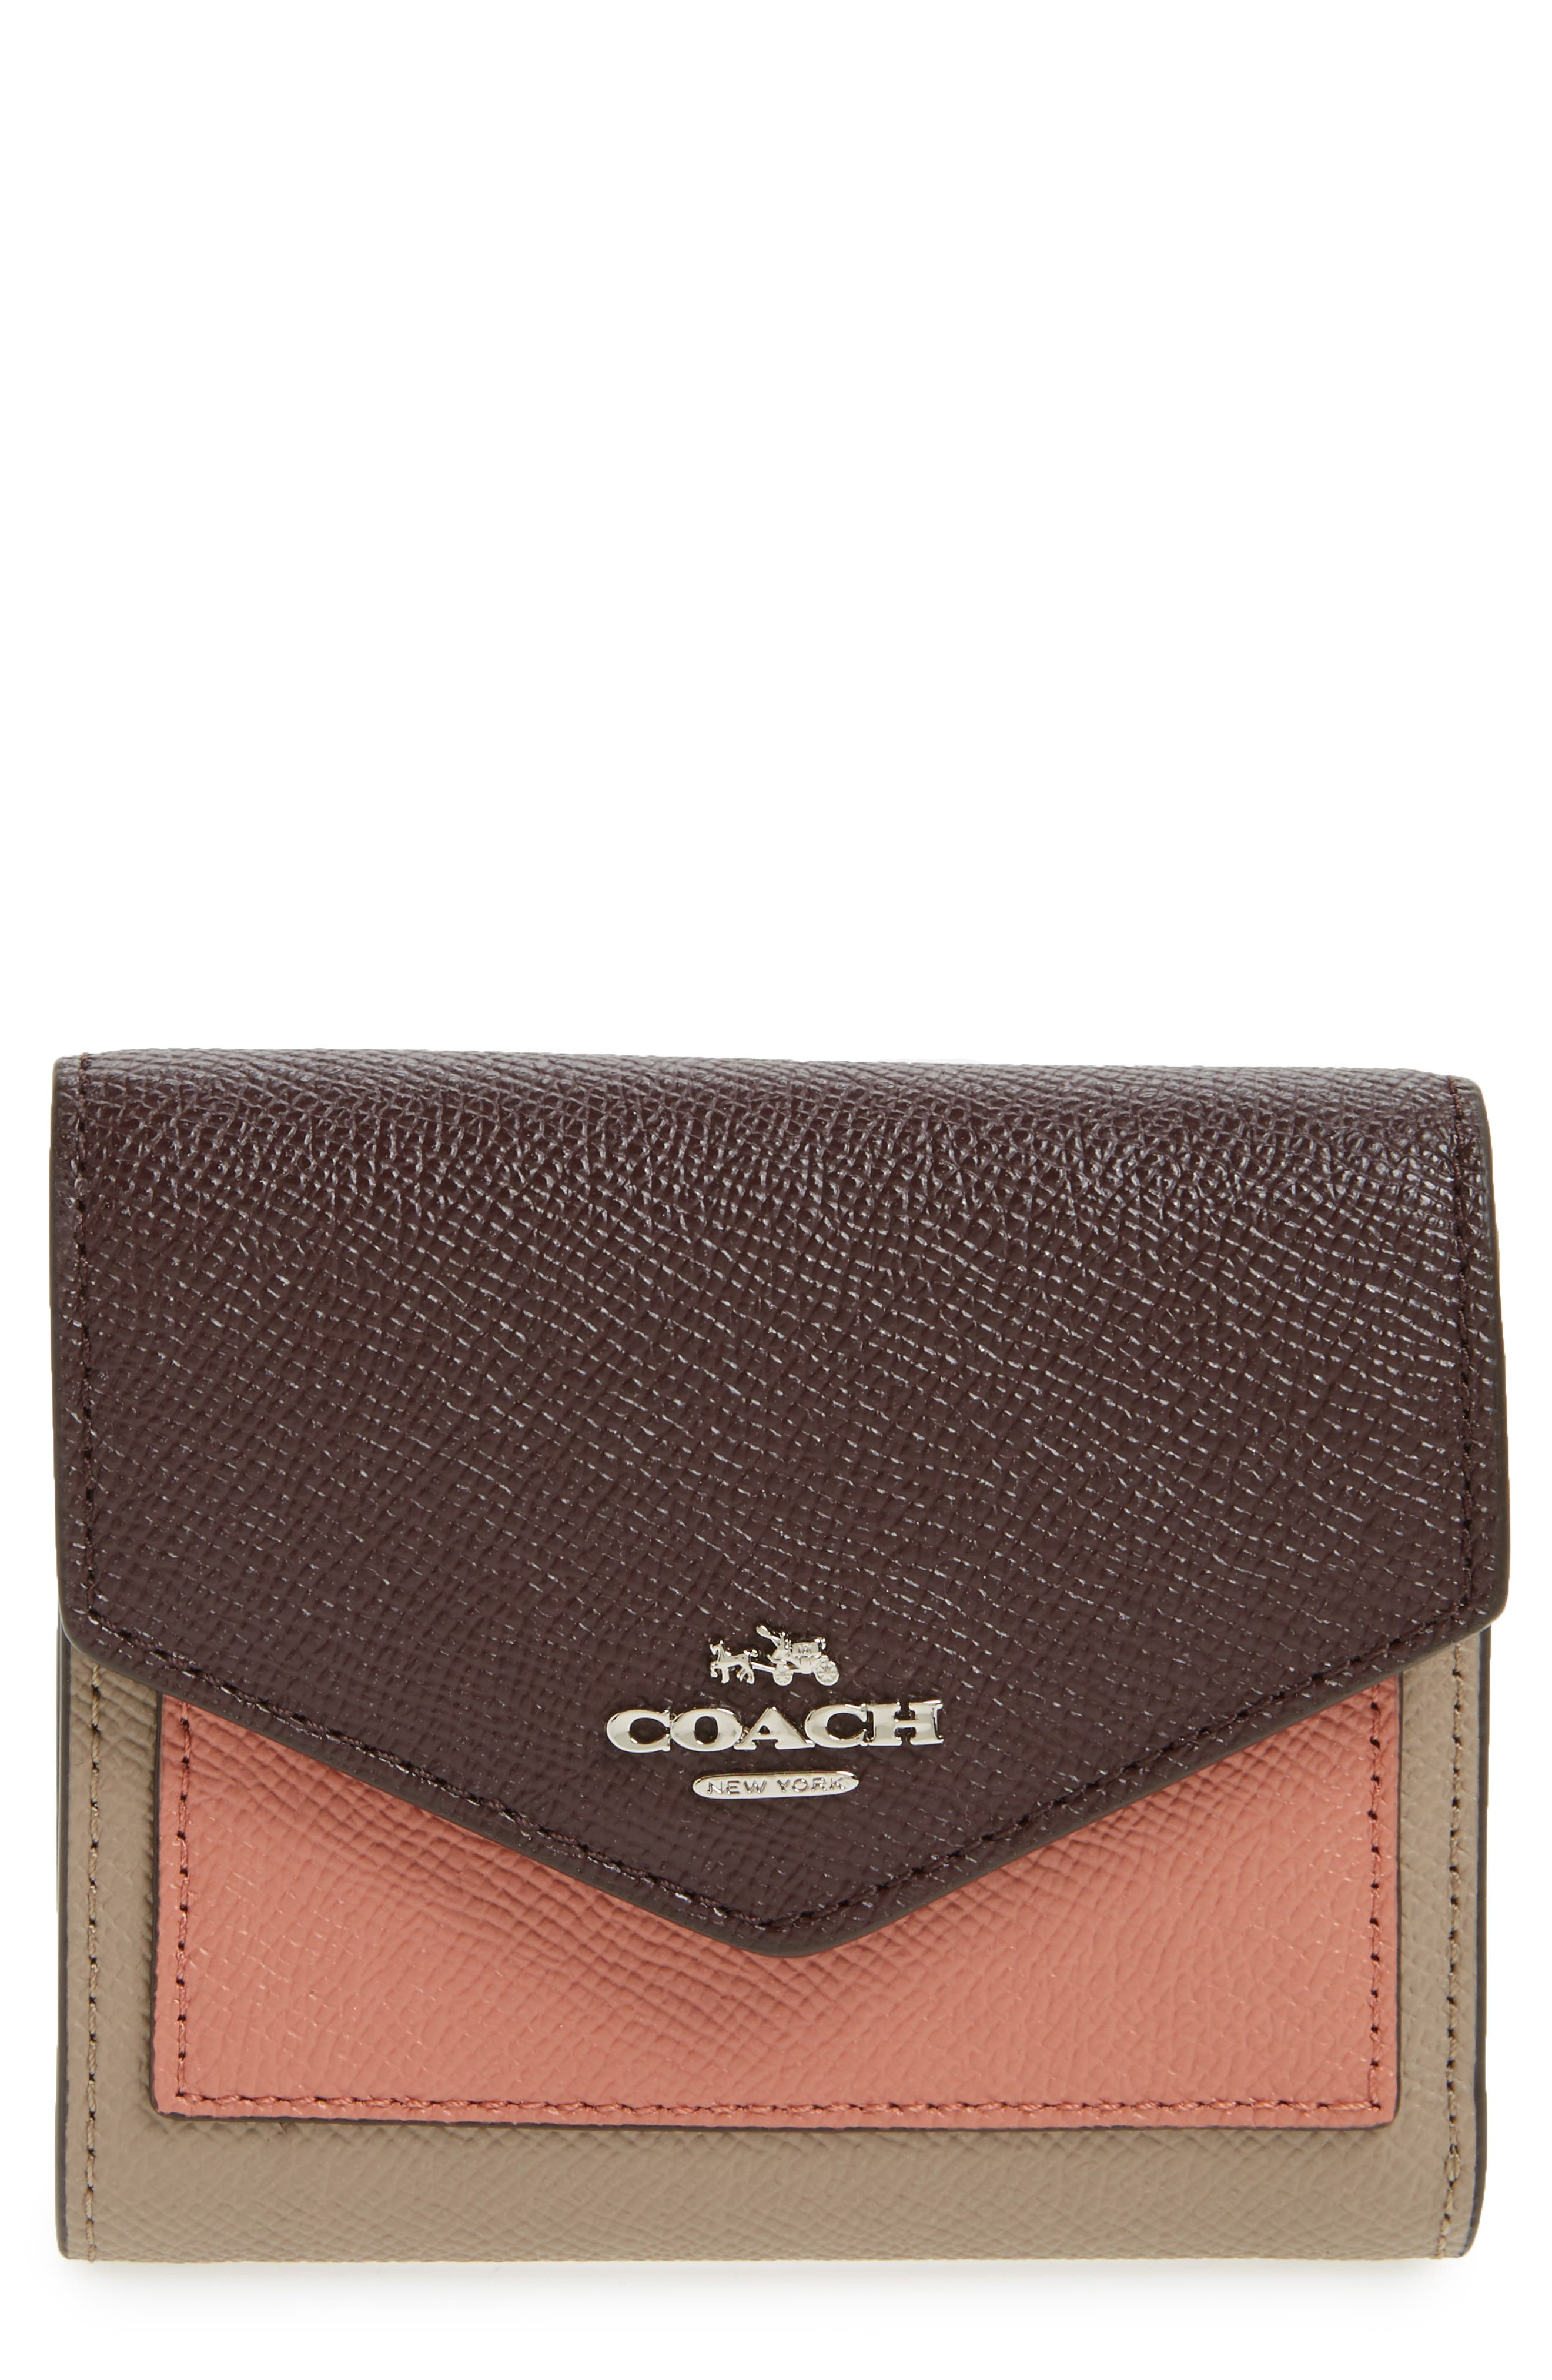 Small Colorblock Calfskin Leather Wallet,                         Main,                         color, Stone/ Melon/ Oxblood